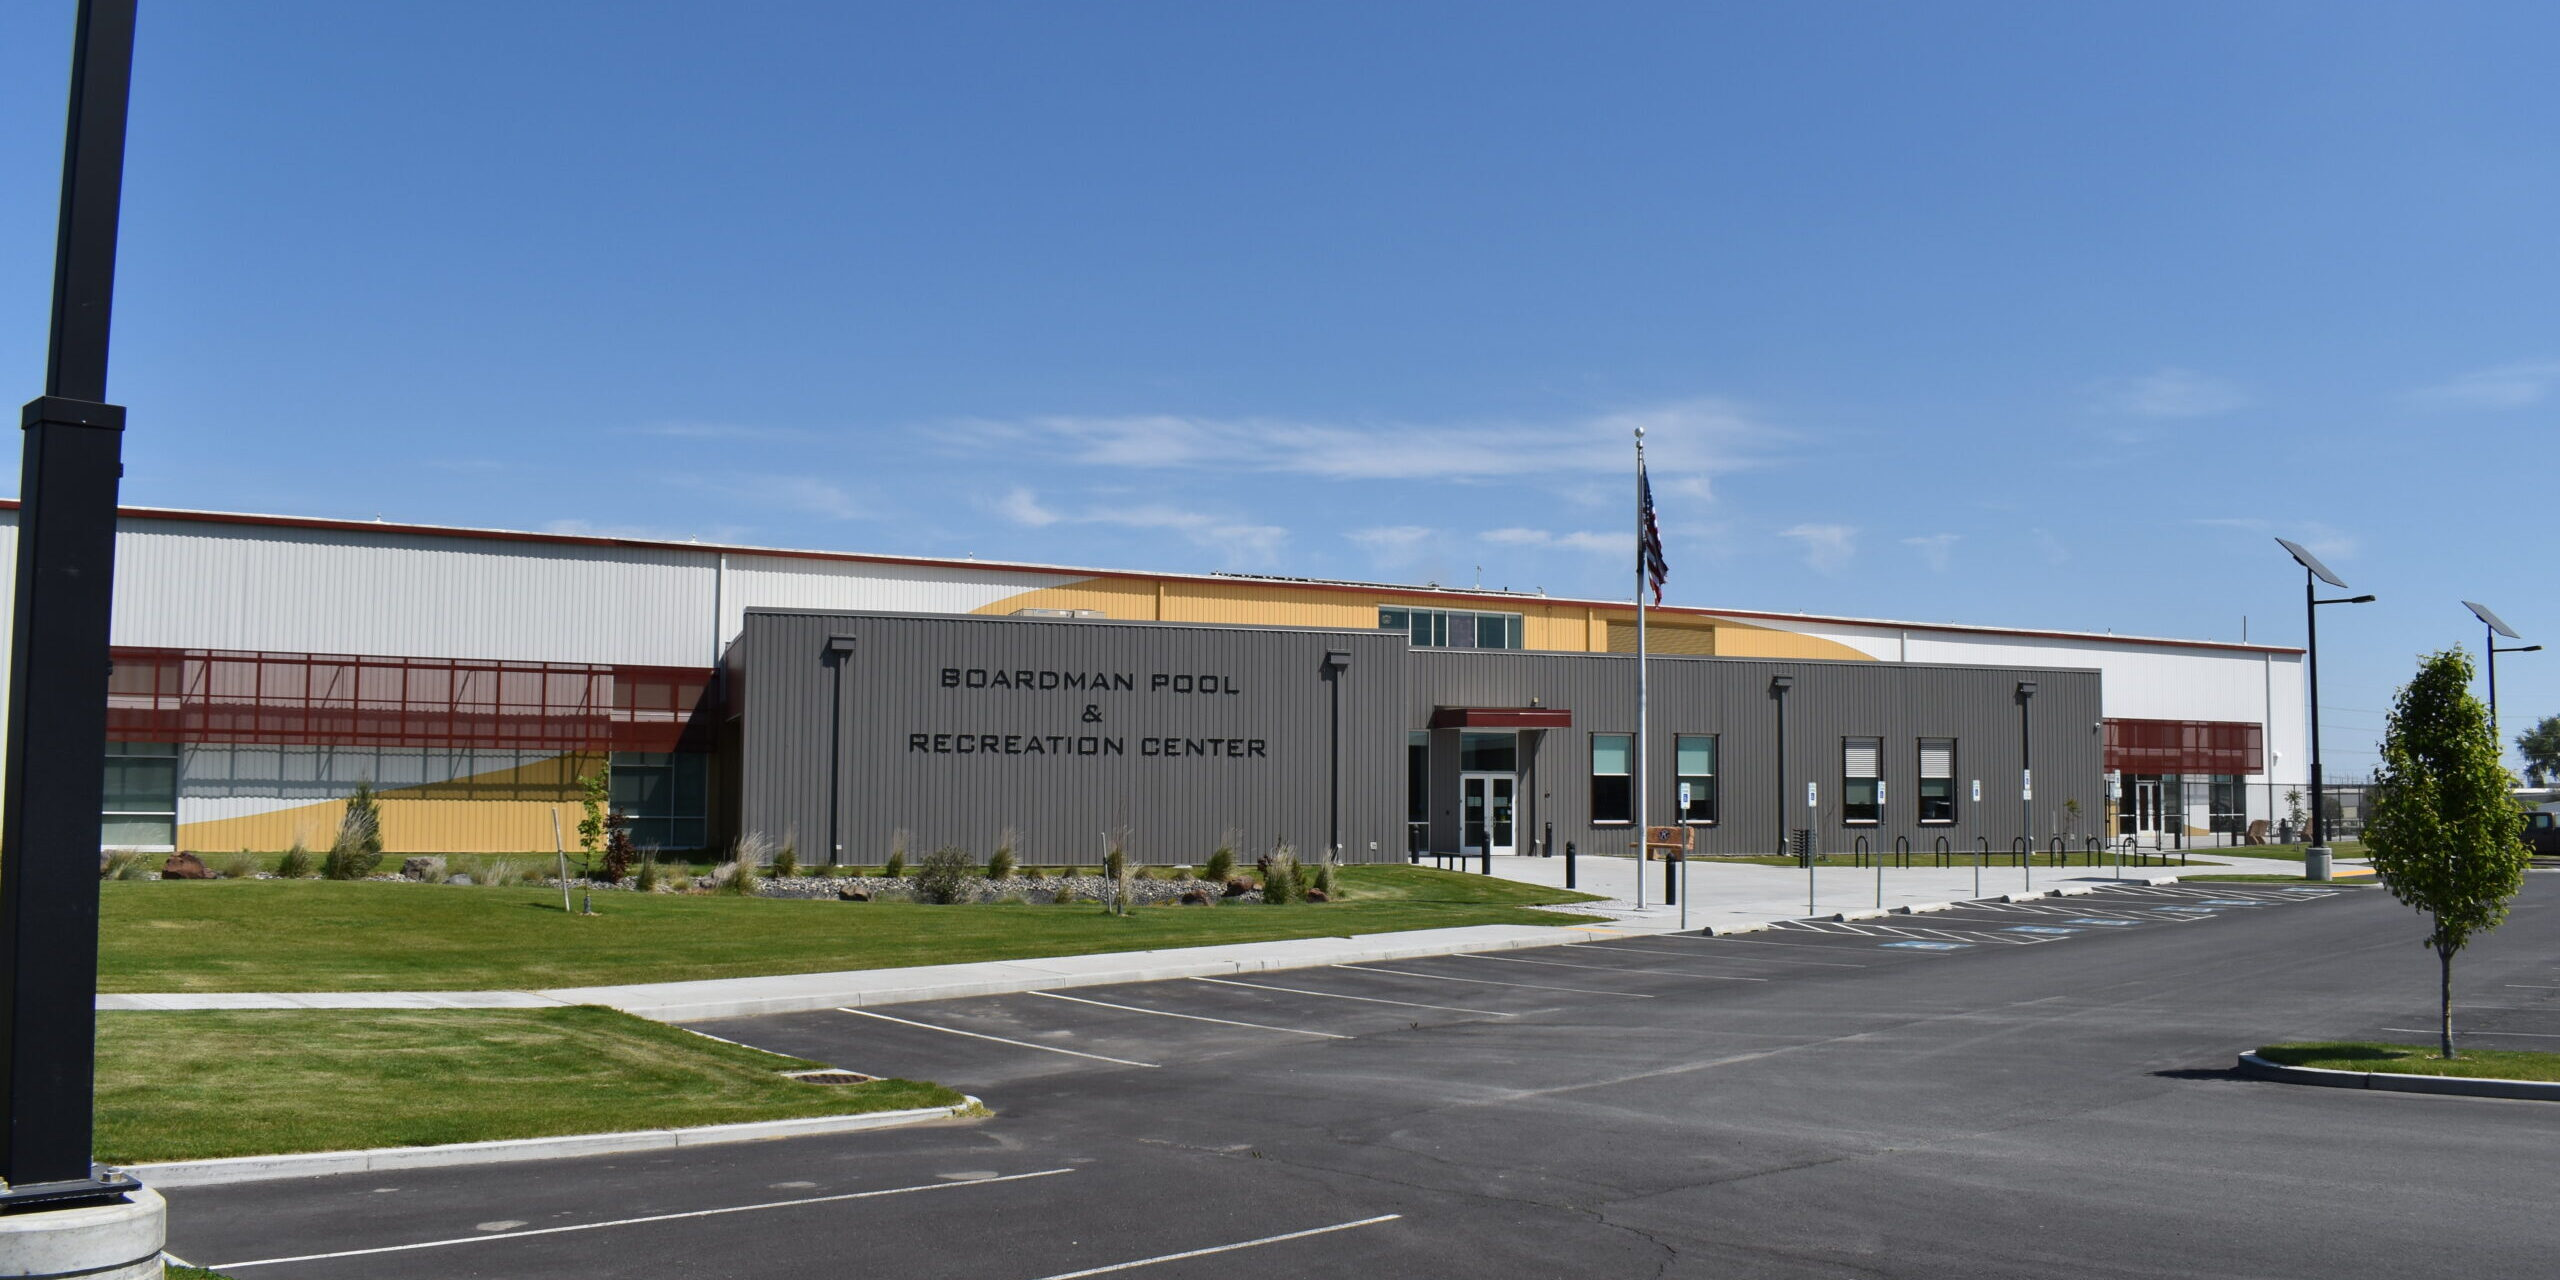 Boardman Pool & Recreational Center Building Exterior and parking lot.